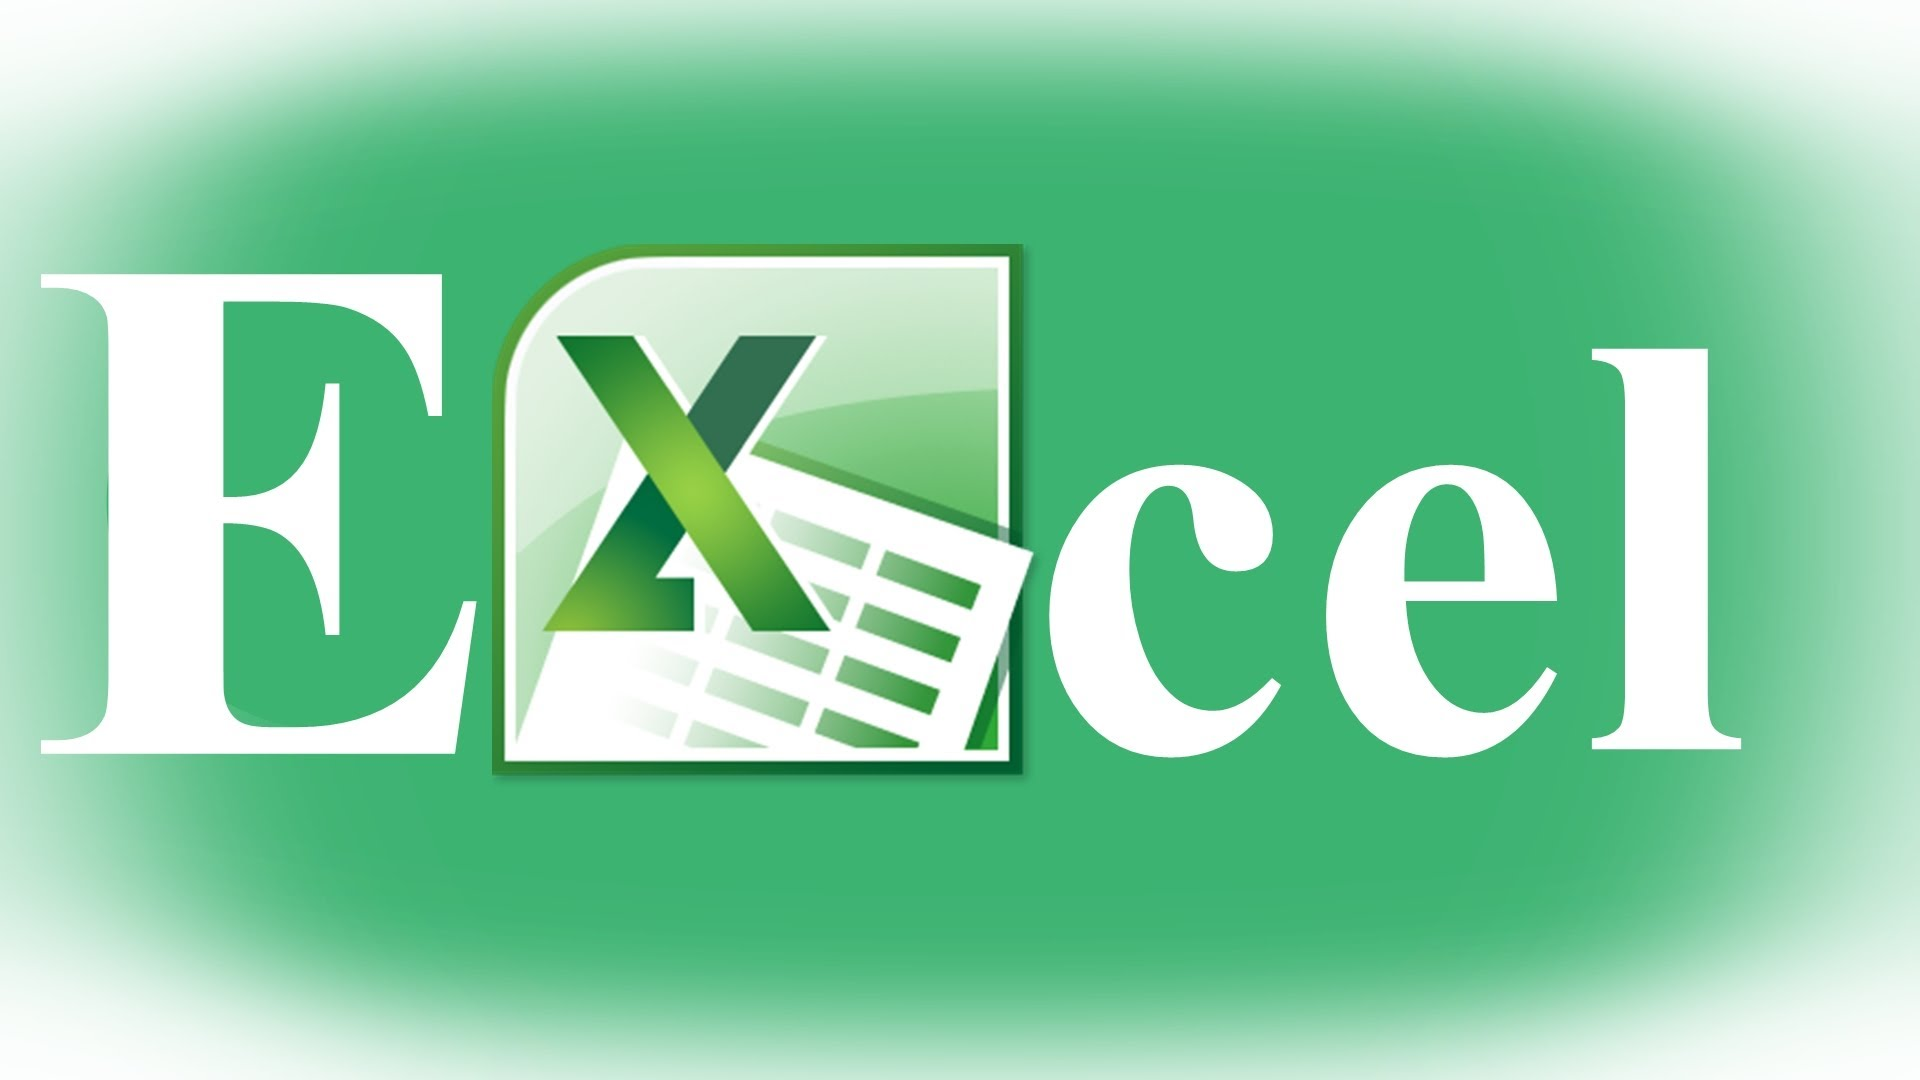 Excel, (1920x1080 px-0.09 Mb)